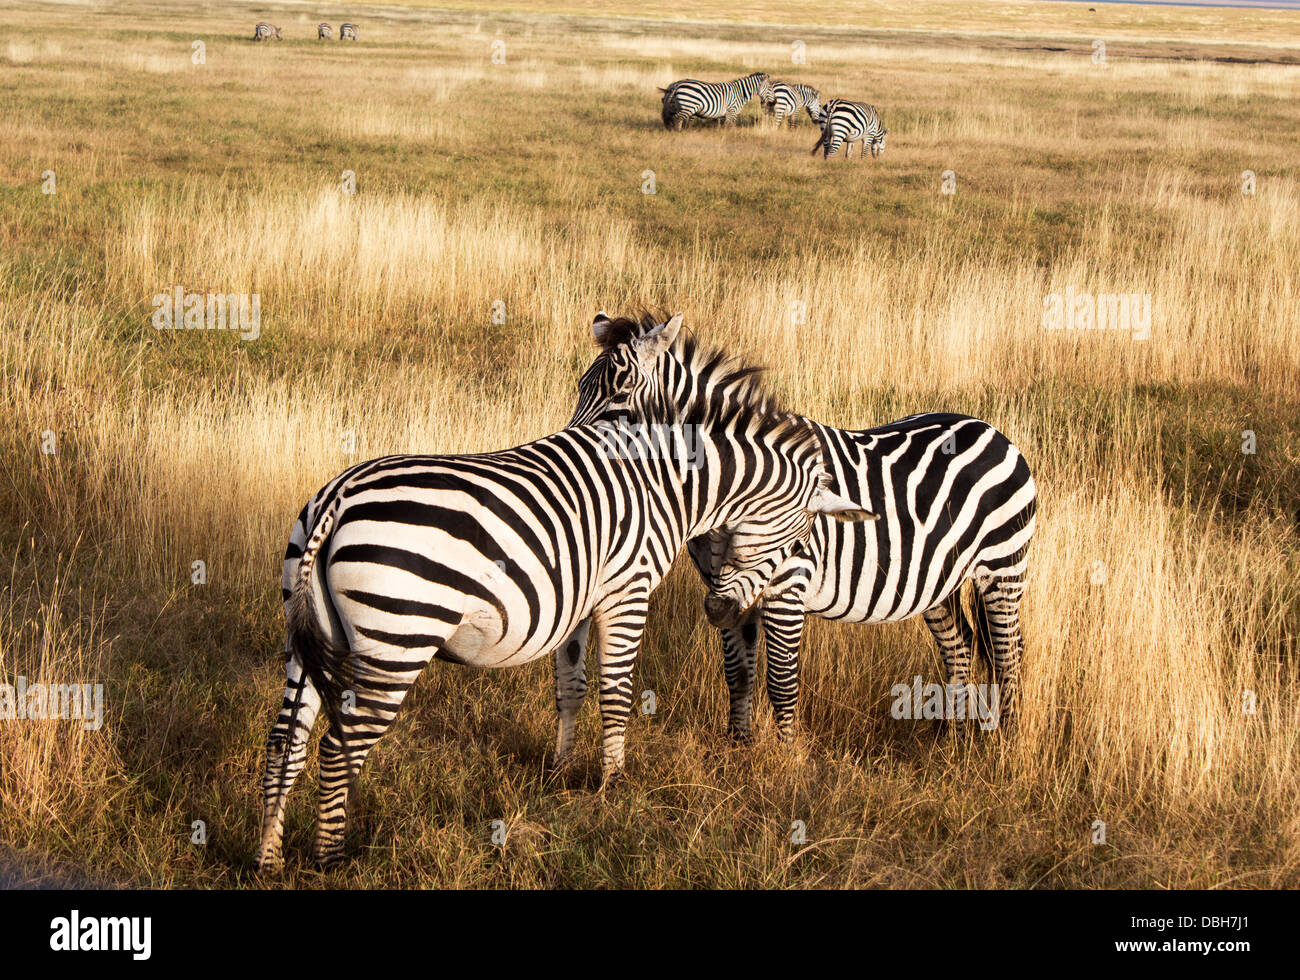 Zebras face to face in the early morning in Tarangire National Park, Tanzania, Africa - Stock Image